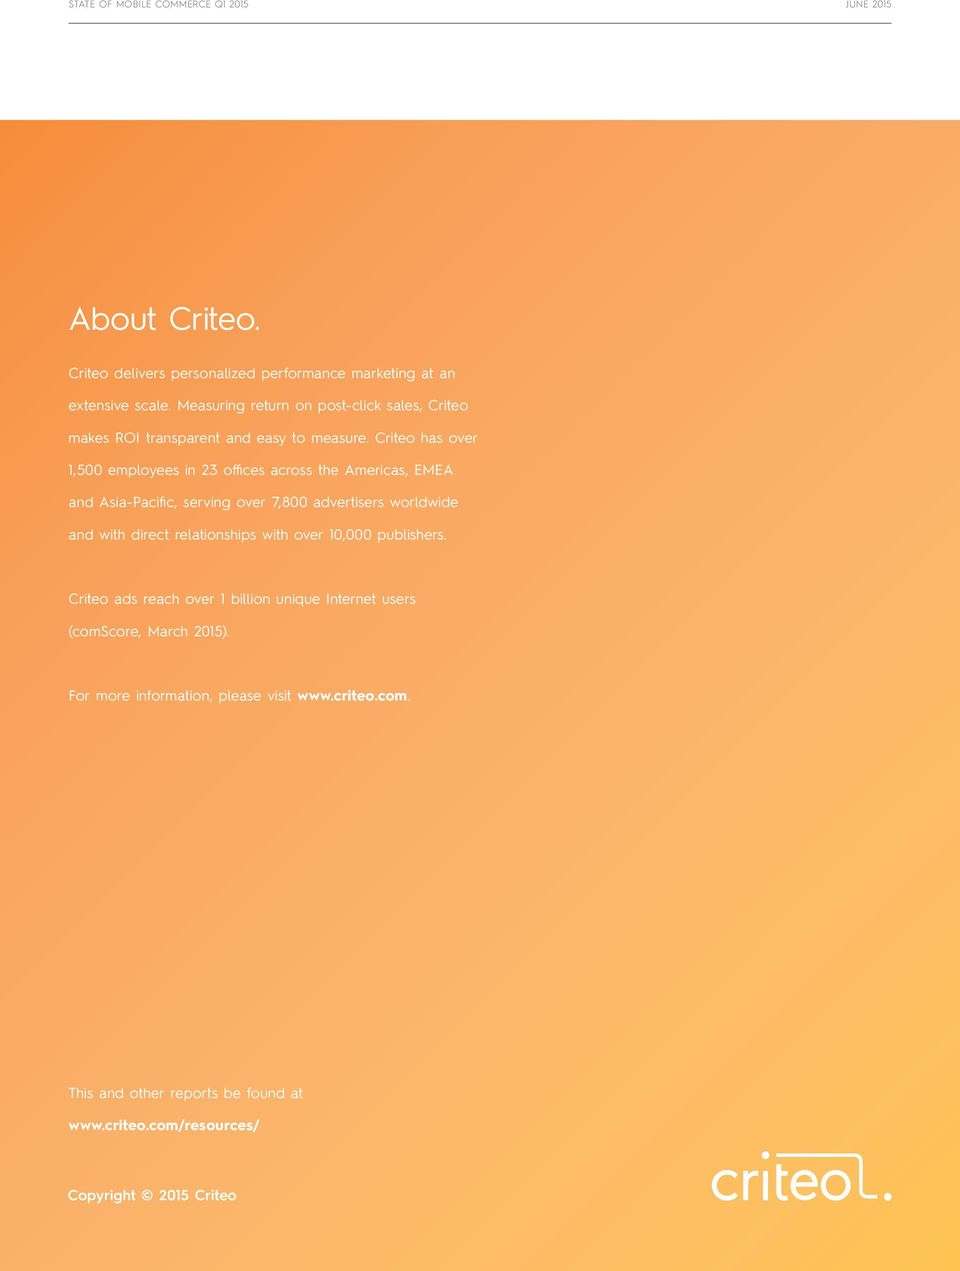 Criteo has over 1,500 employees in 23 offices across the Americas, EMEA and Asia-Pacific, serving over 7,800 advertisers worldwide and with direct